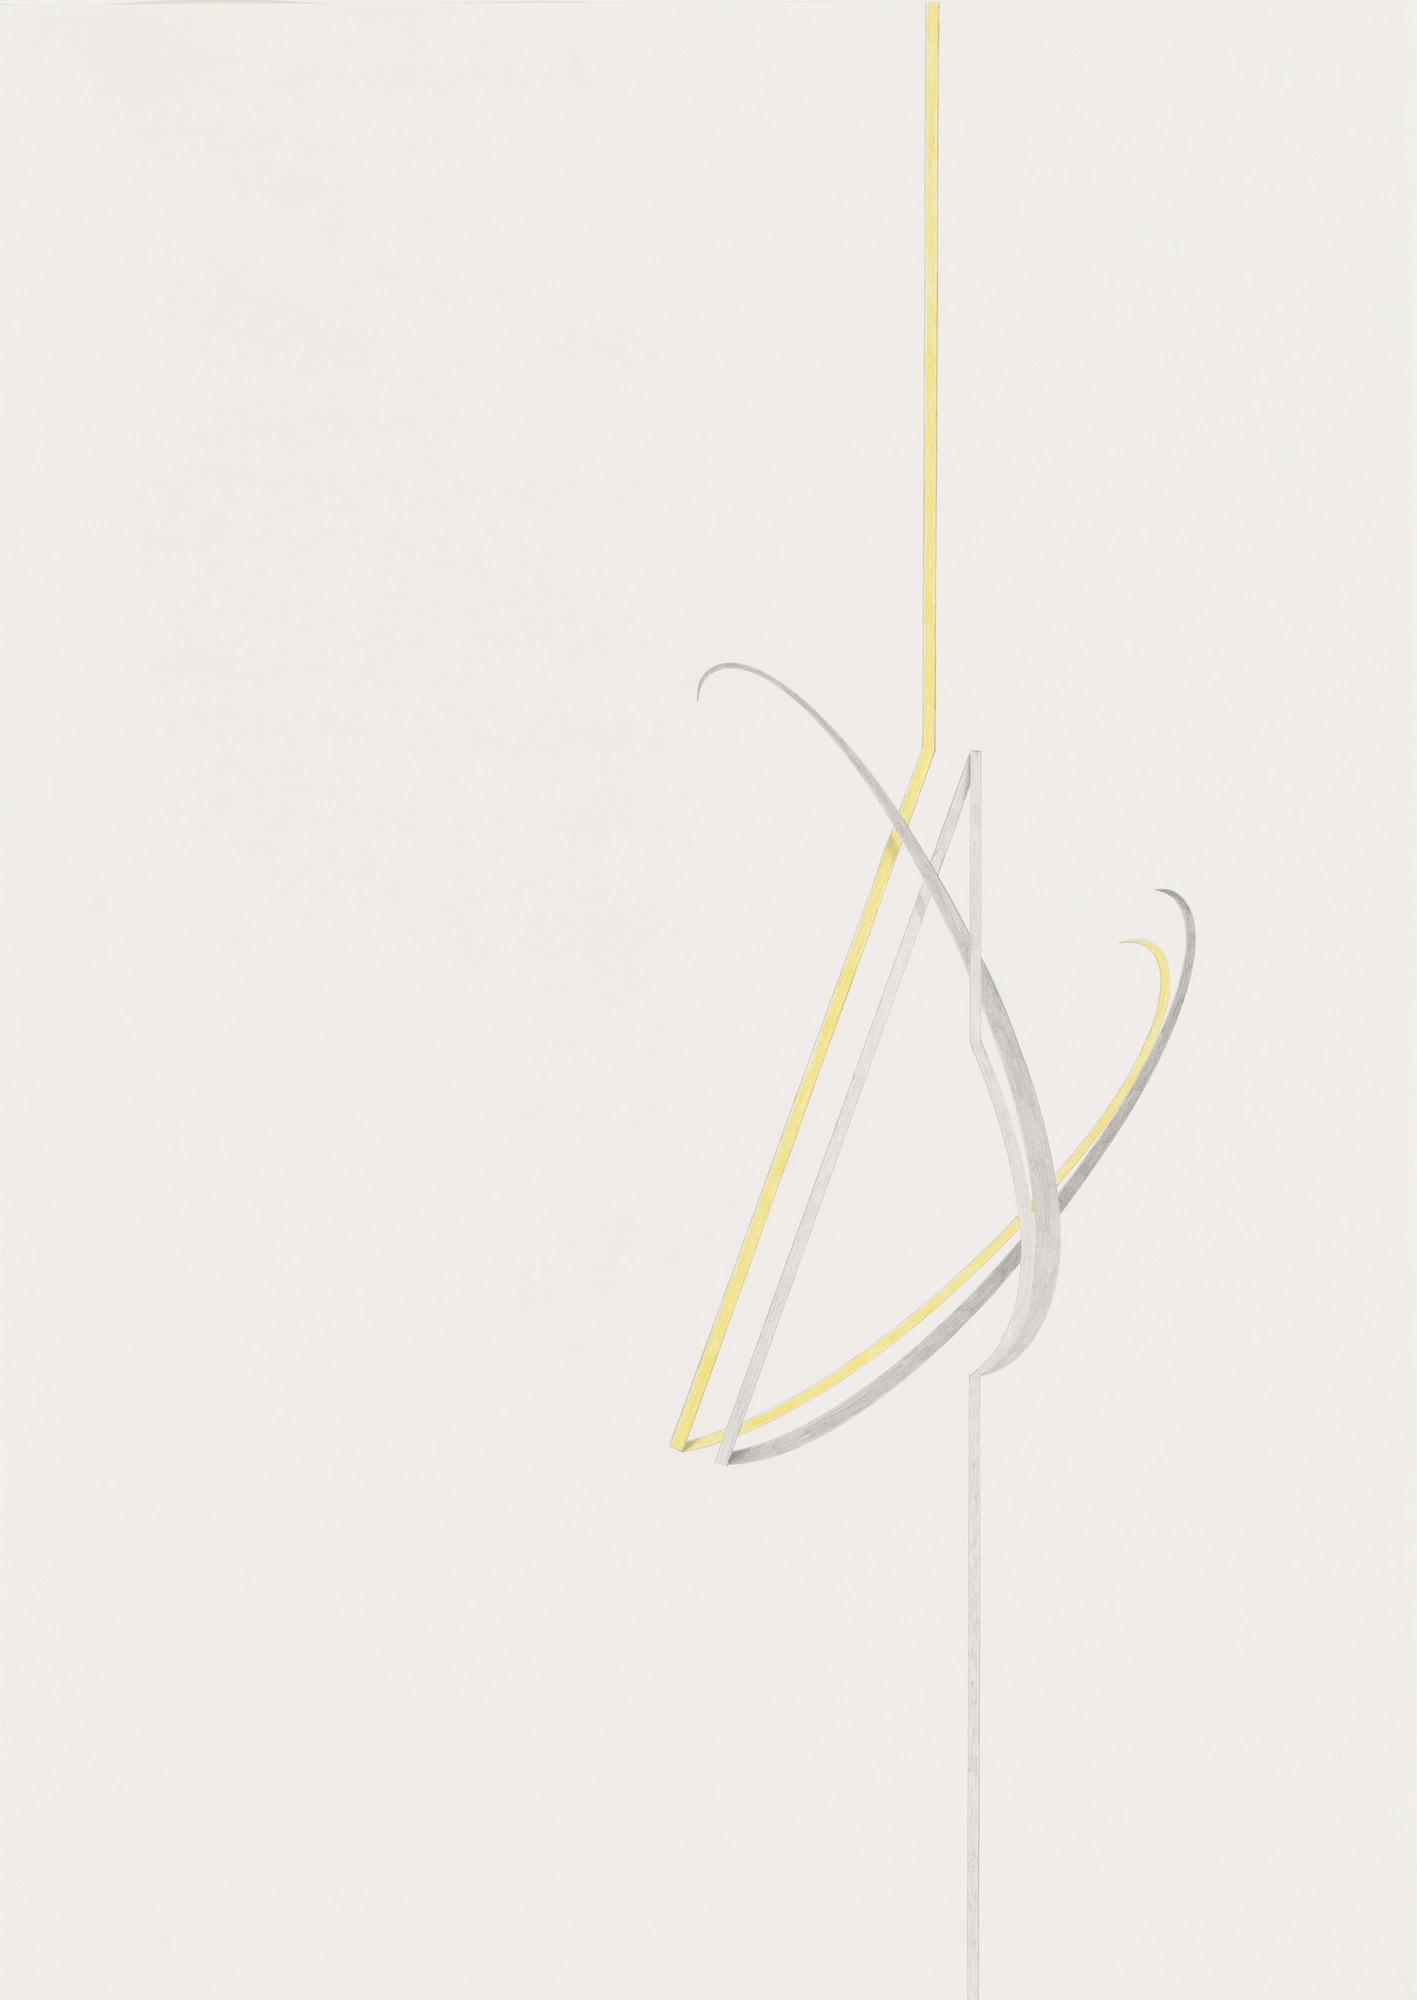 Tomma Abts. Untitled (#17). 2004